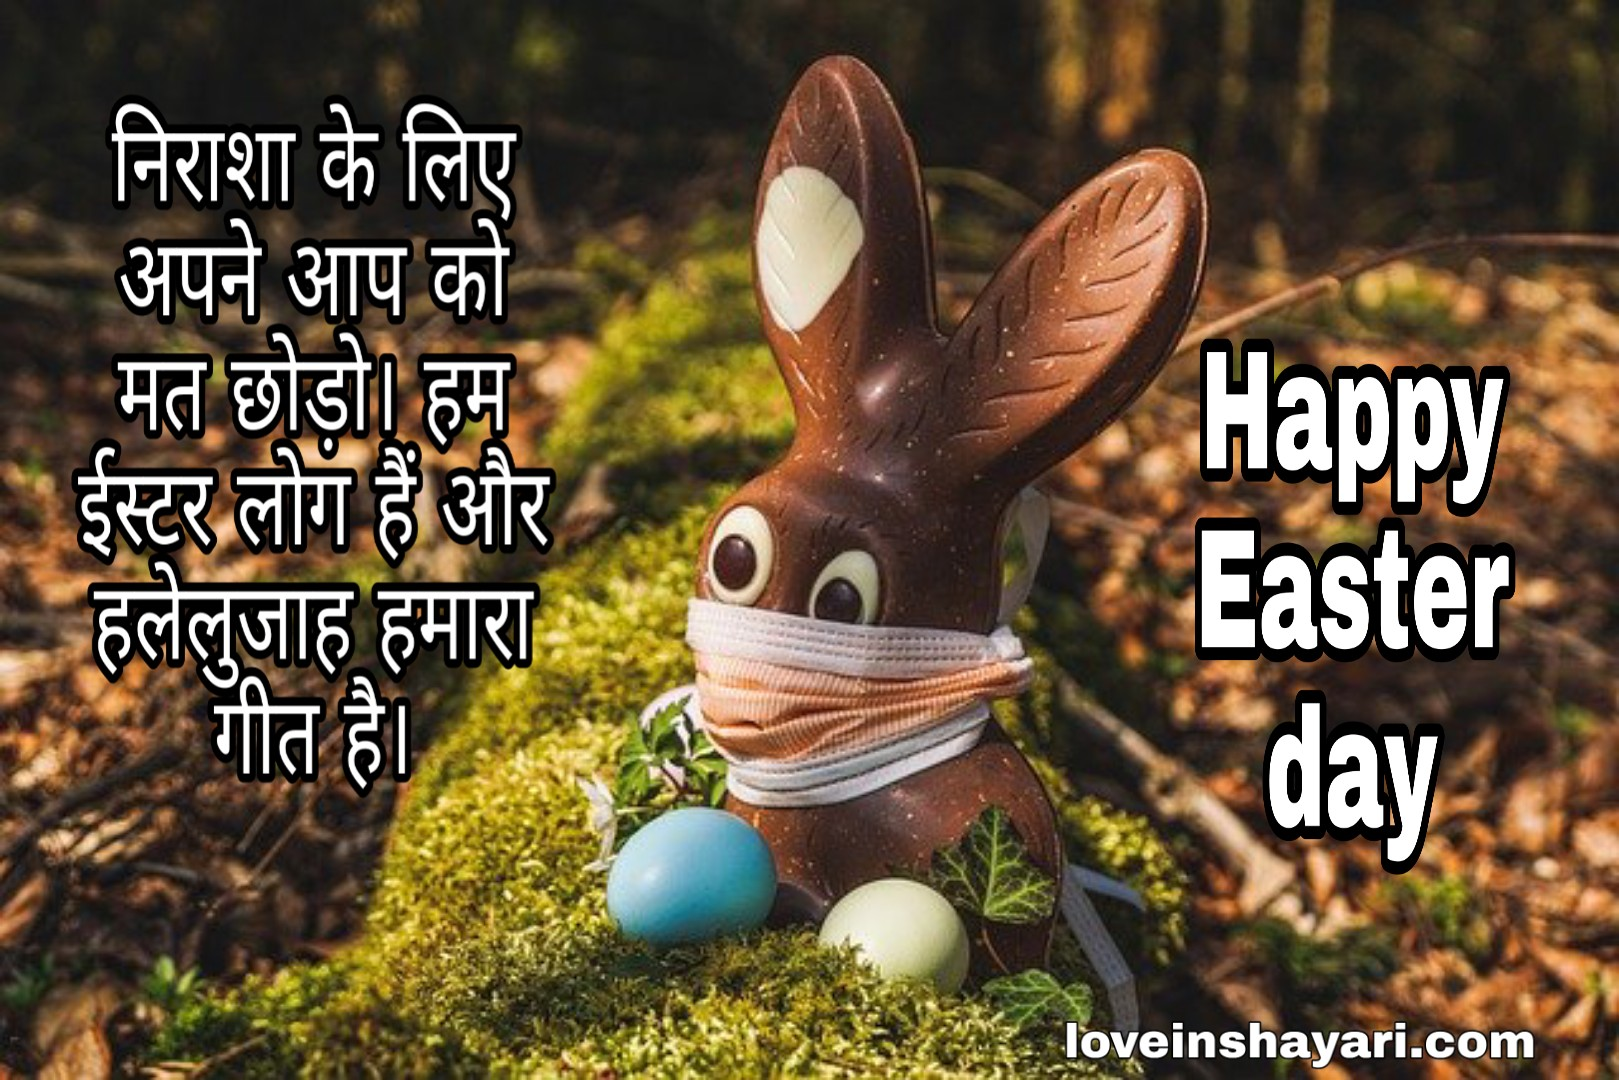 Easter day wishes shayari quotes message